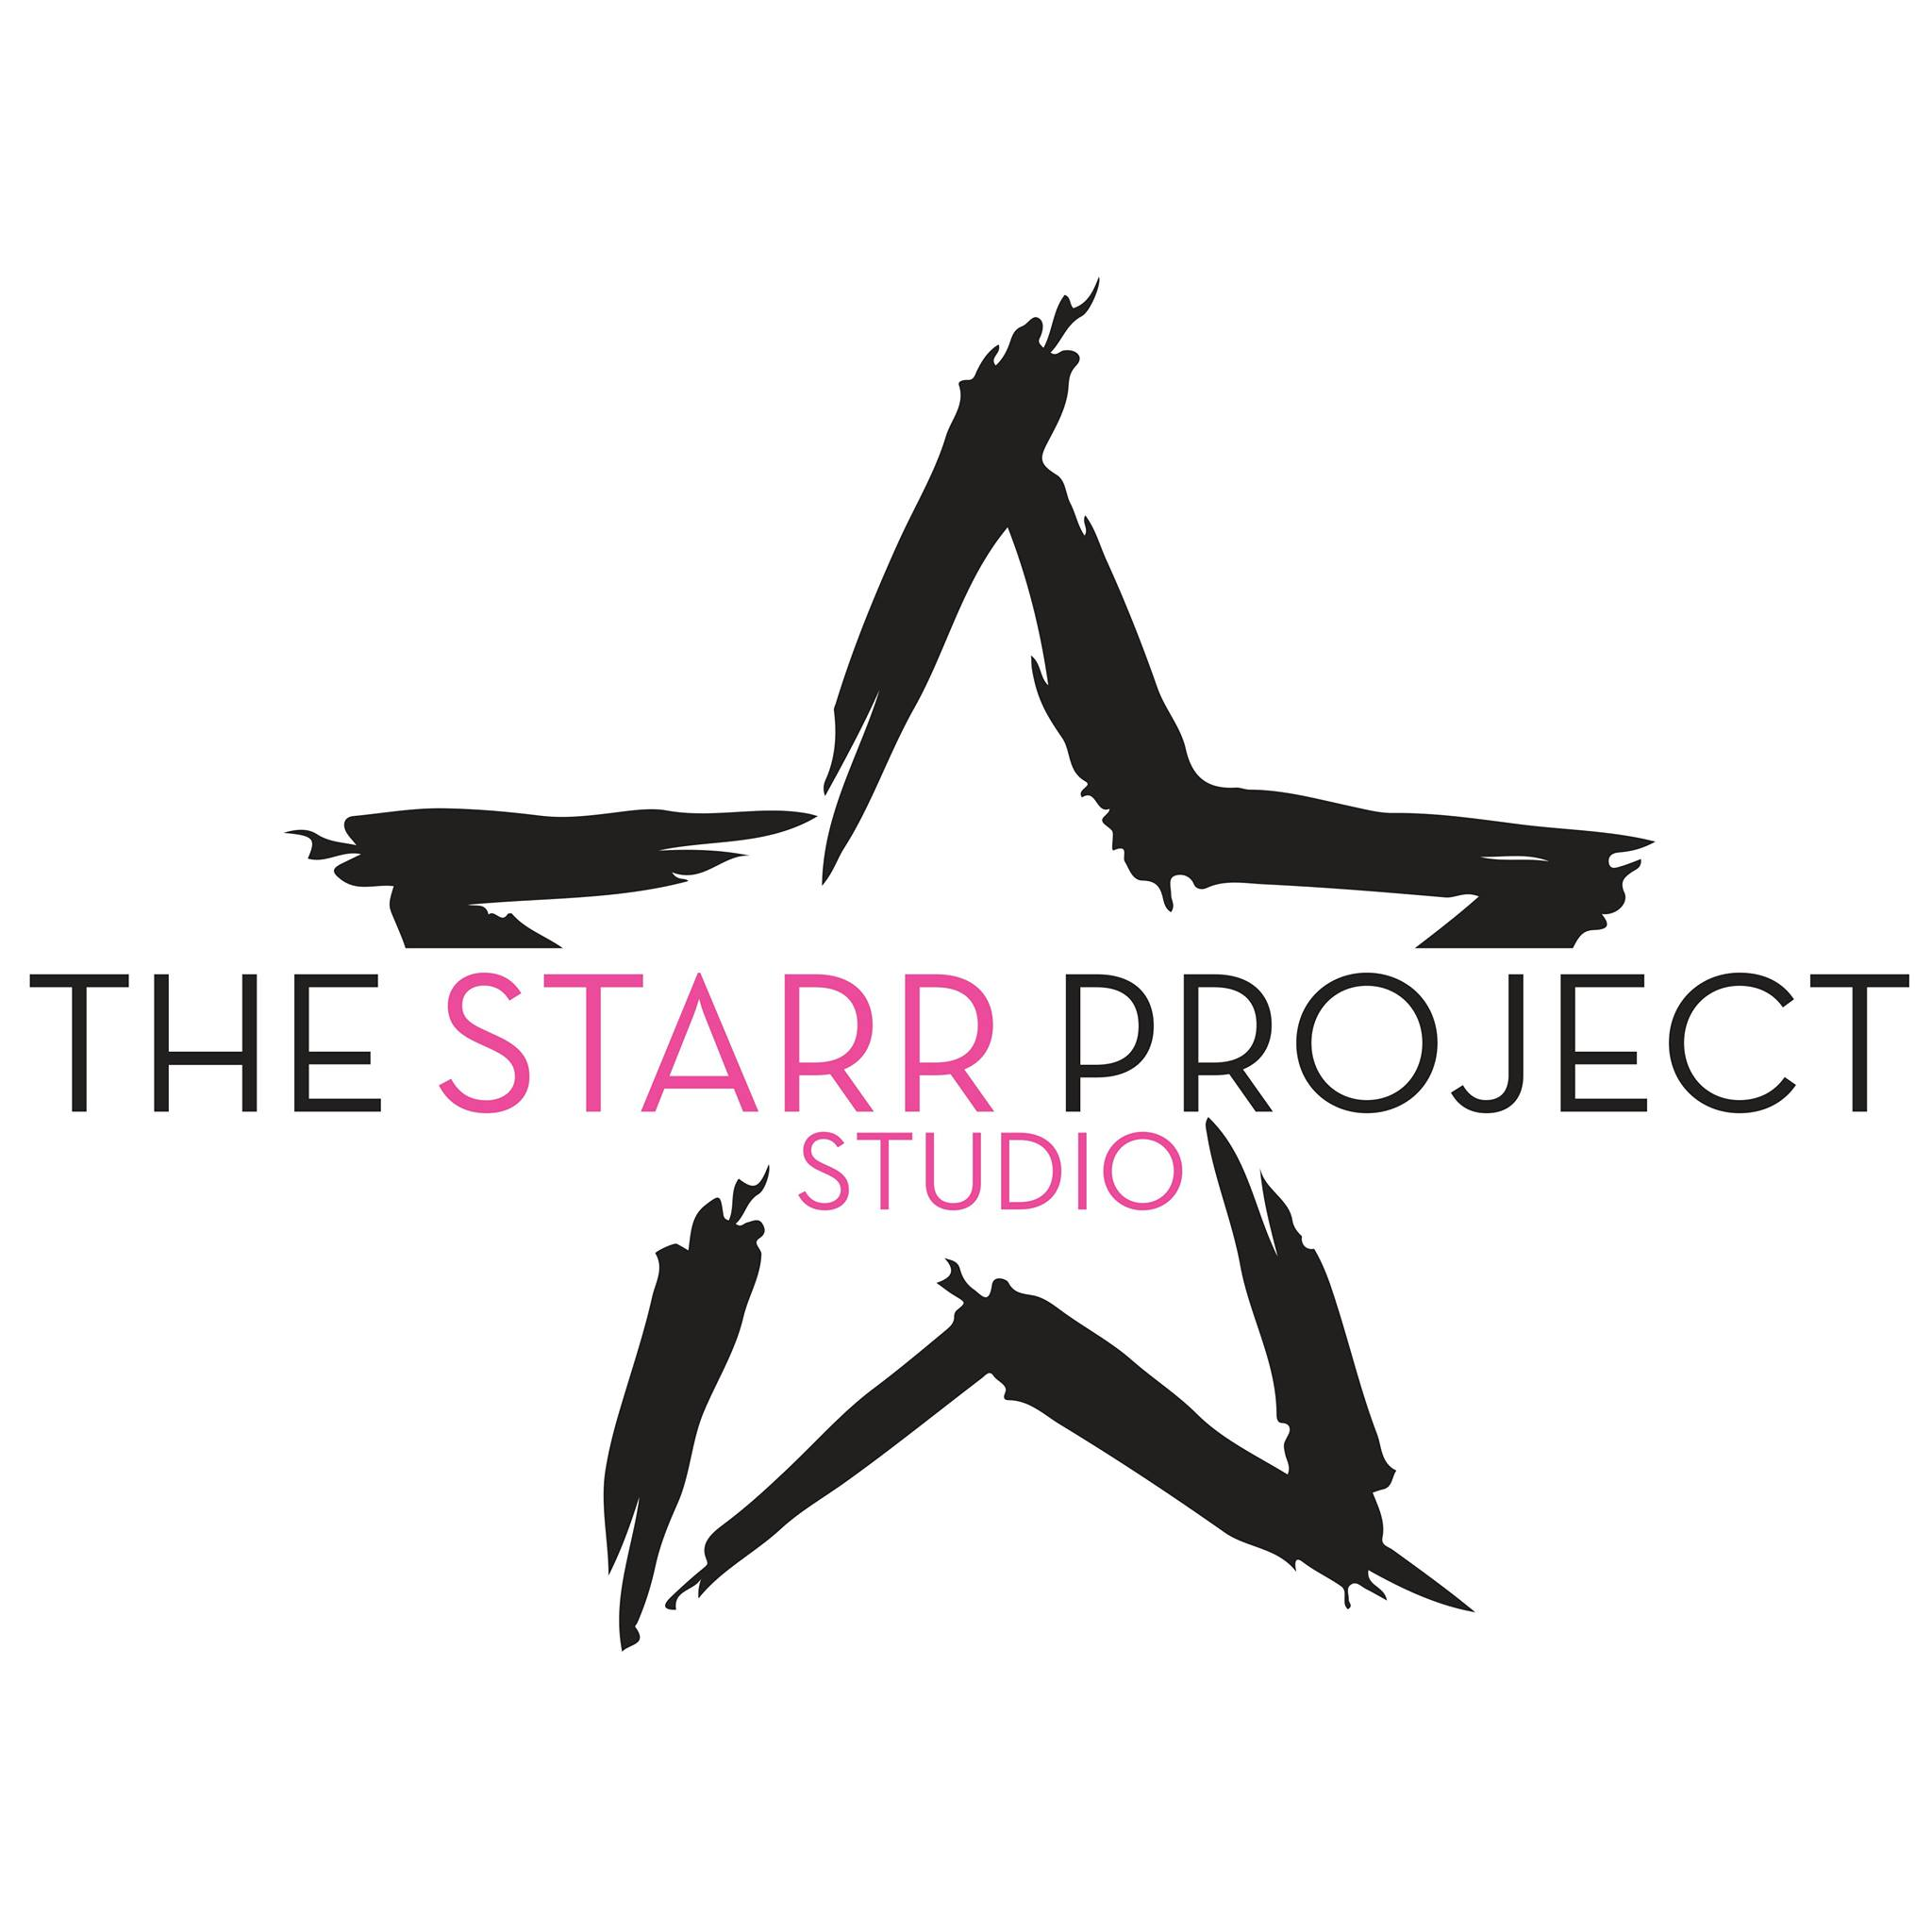 The Starr Project Studio